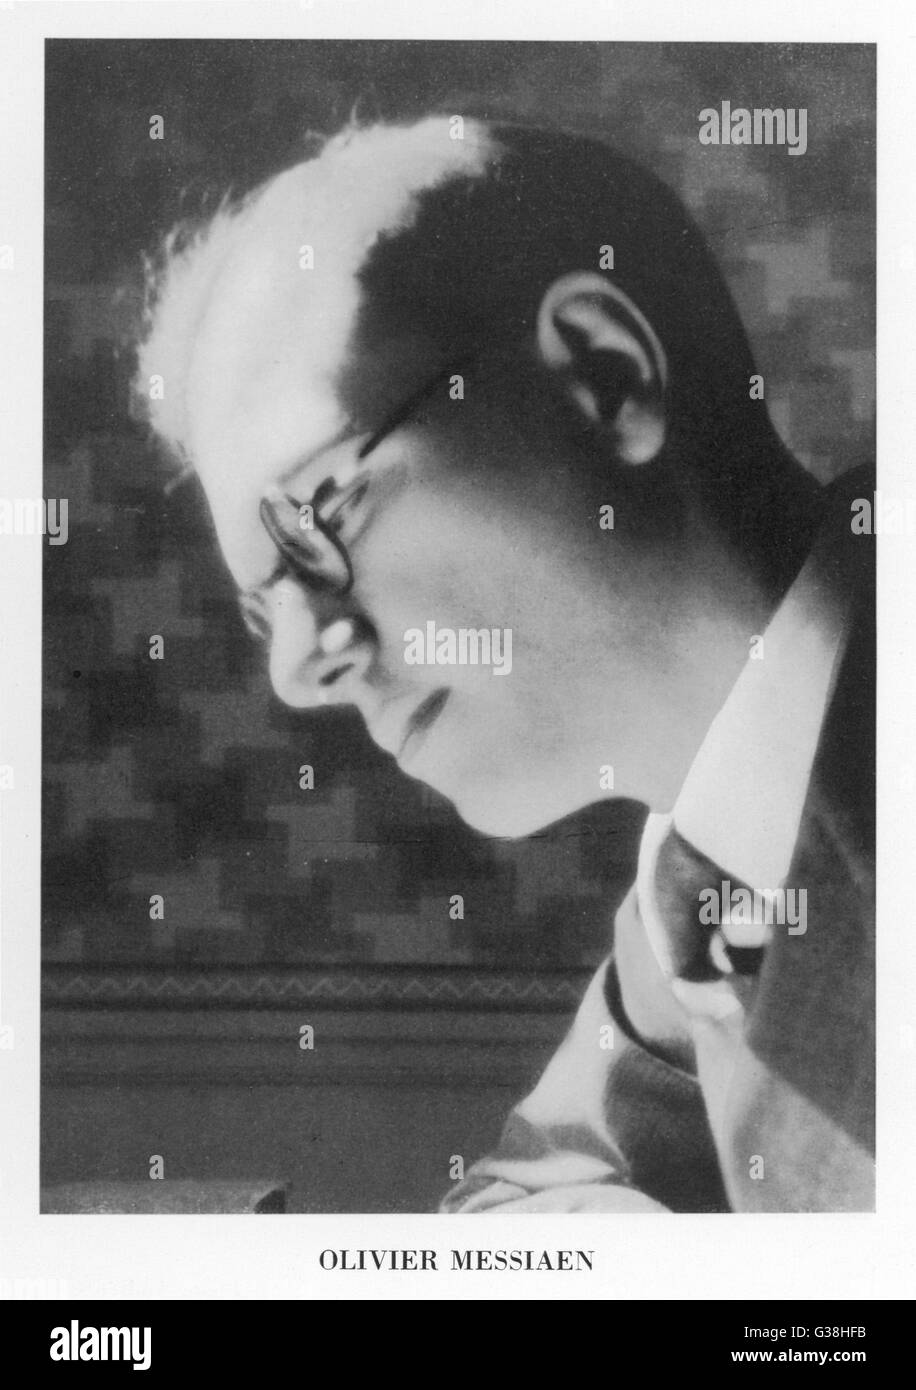 OLIVIER MESSIAEN  French musician        Date: 1908 - 1992 - Stock Image